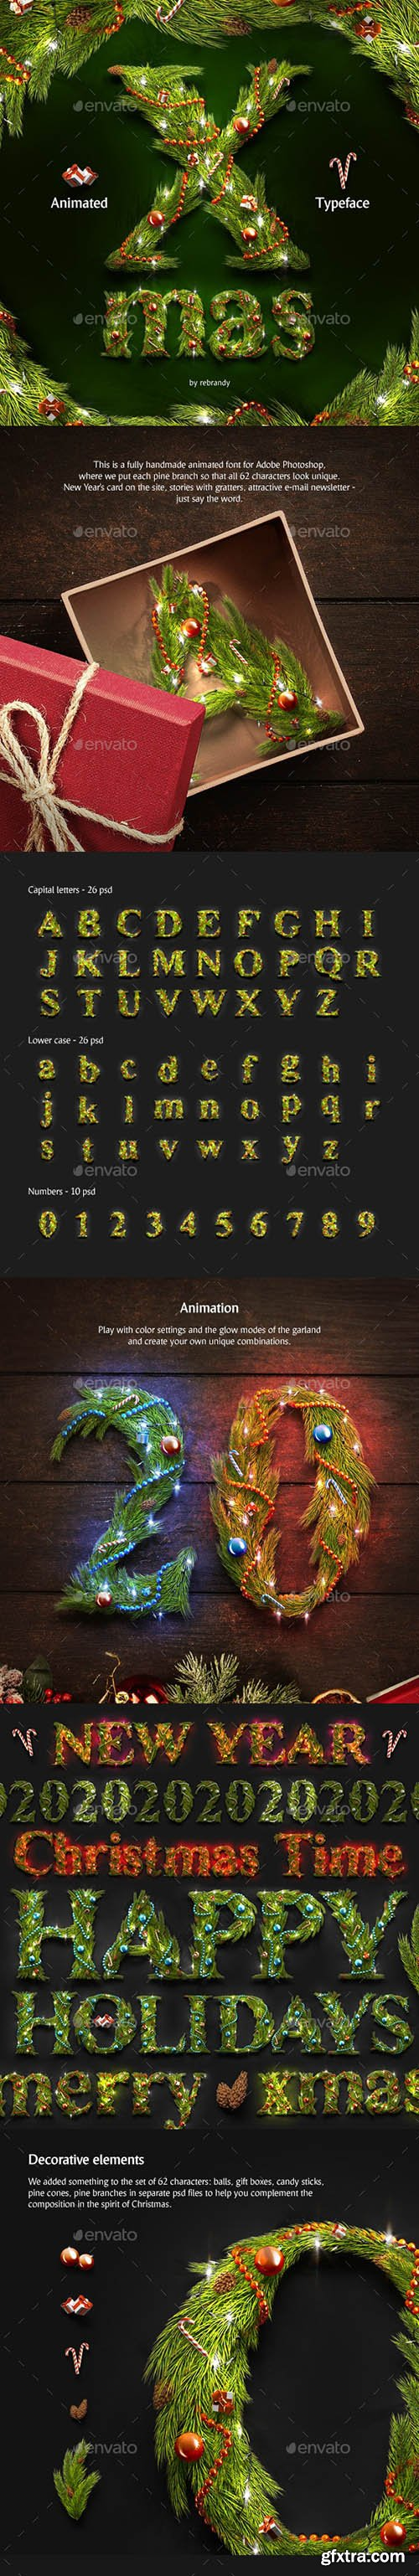 Graphicriver Christmas Animated Typeface 24819053